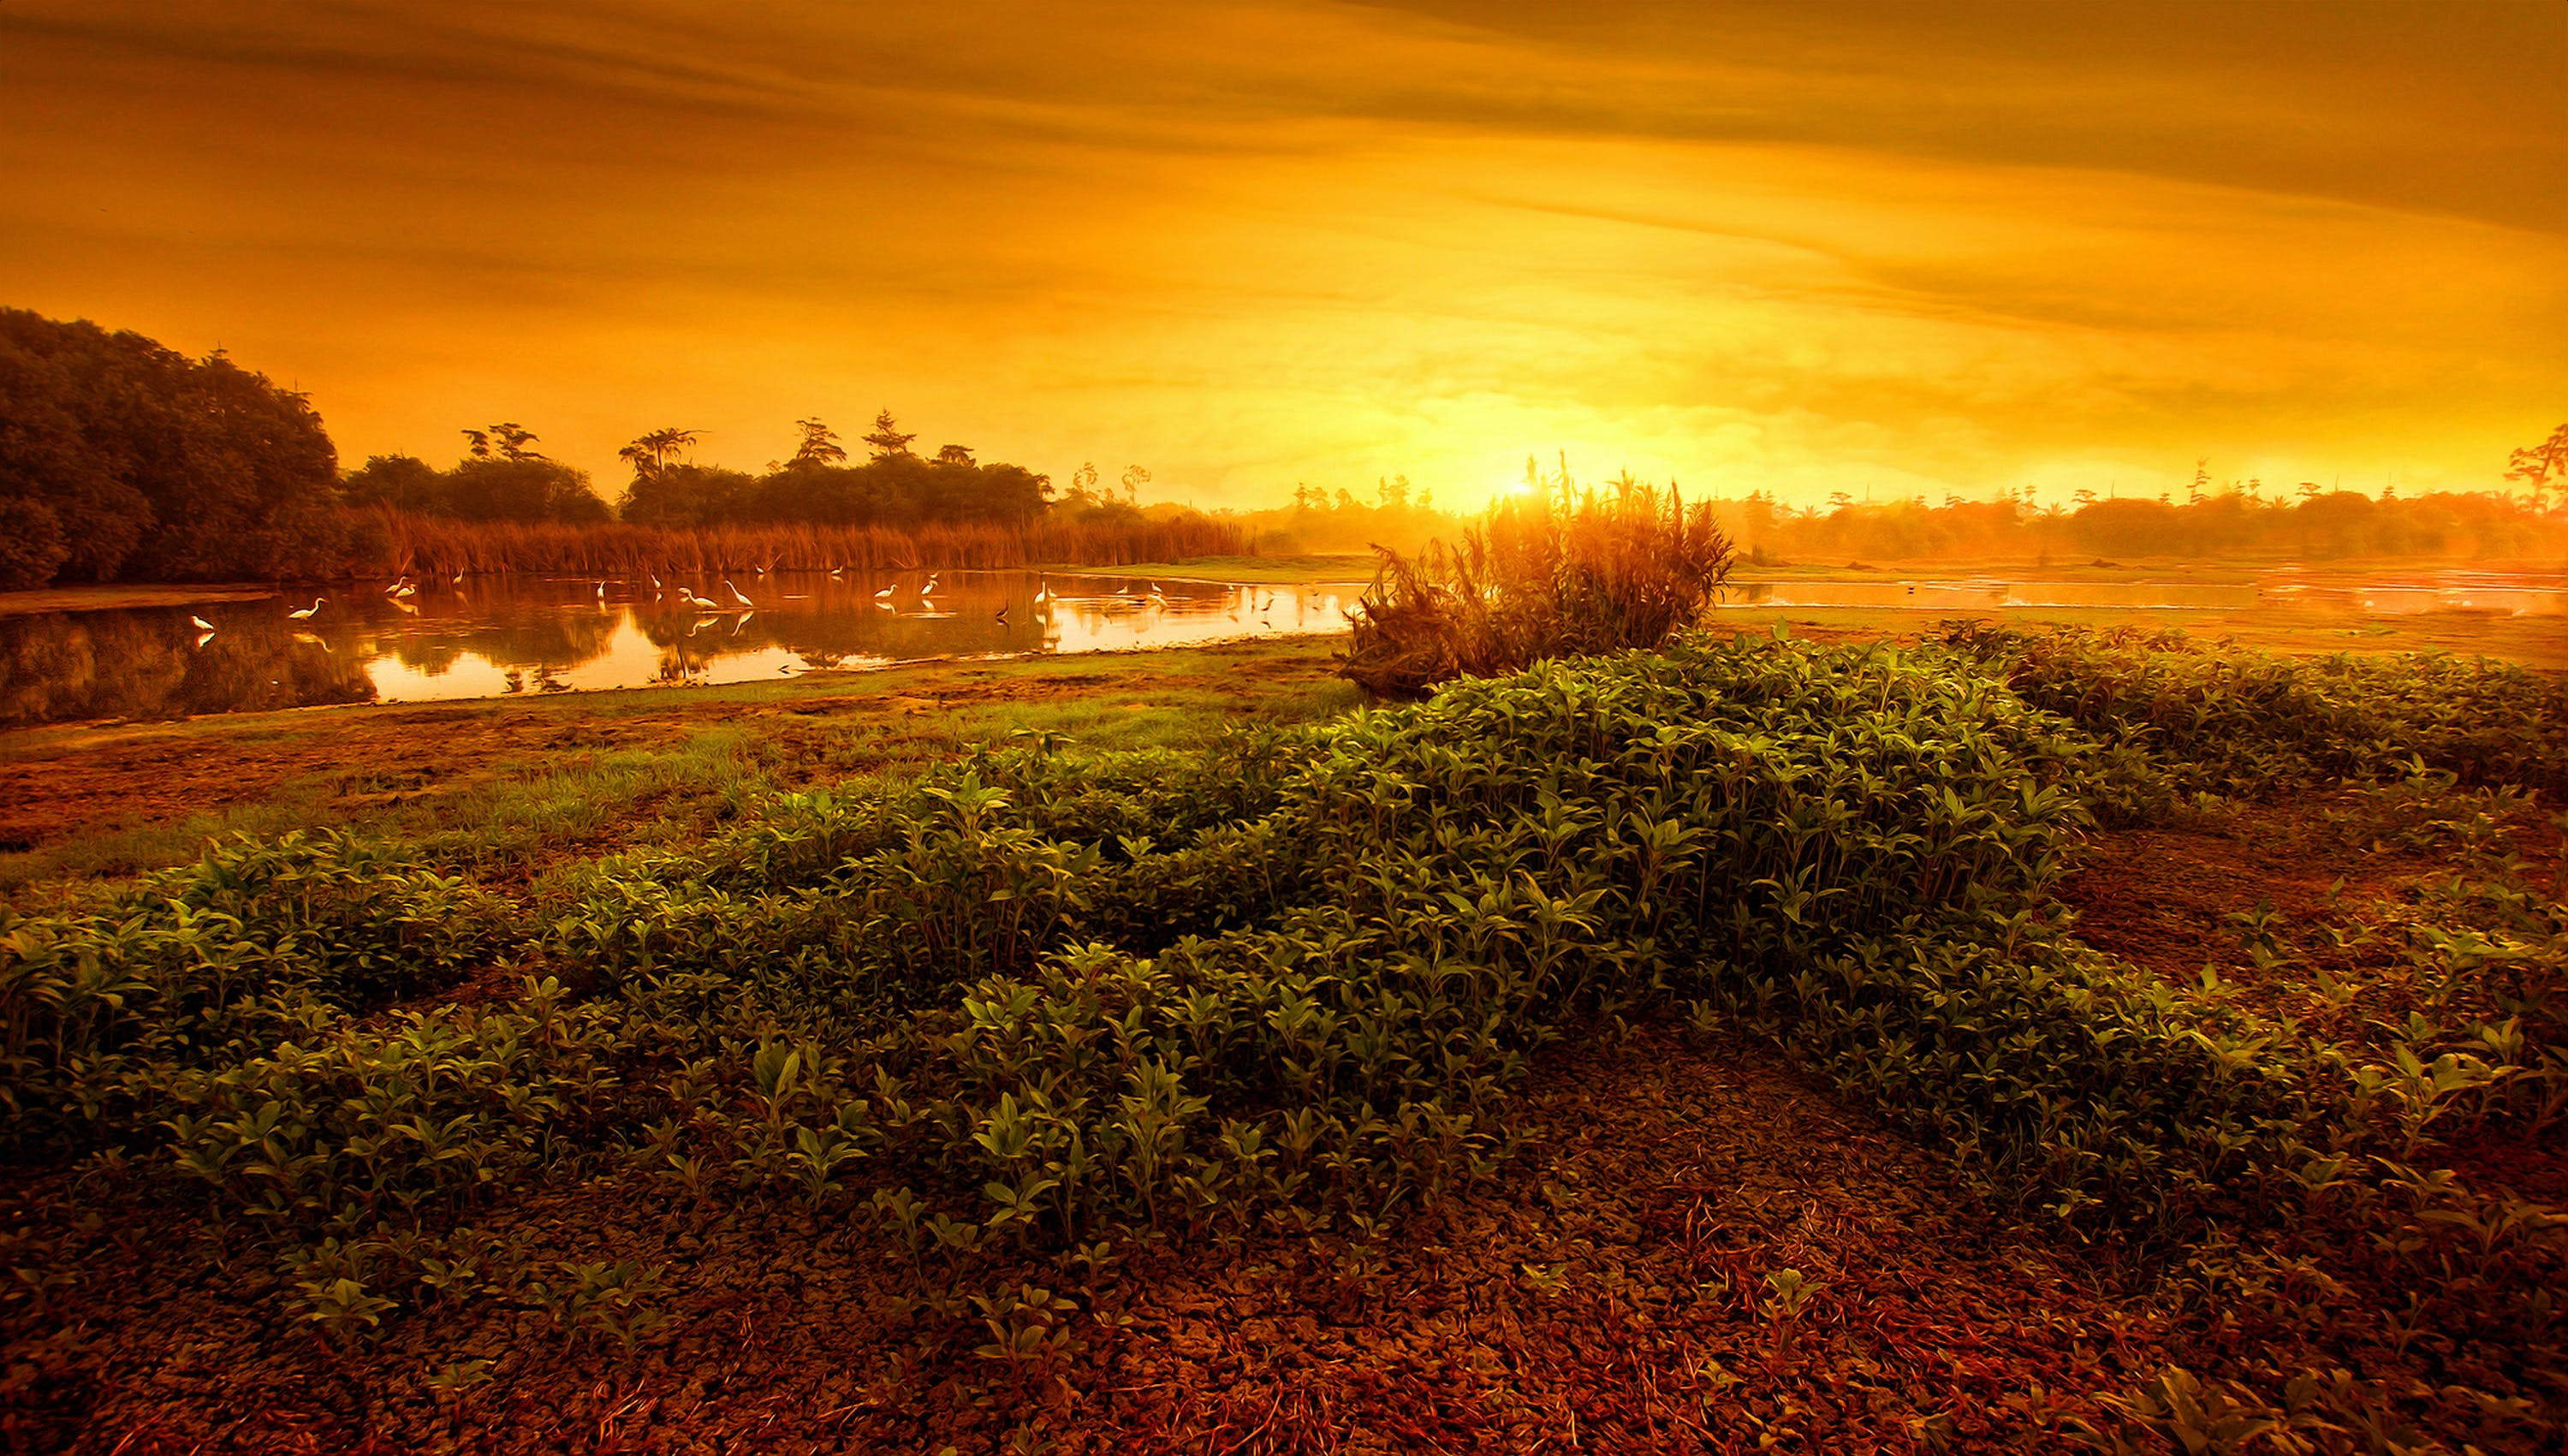 Calm Body of Water Surrounded by Grass during Golden Hour